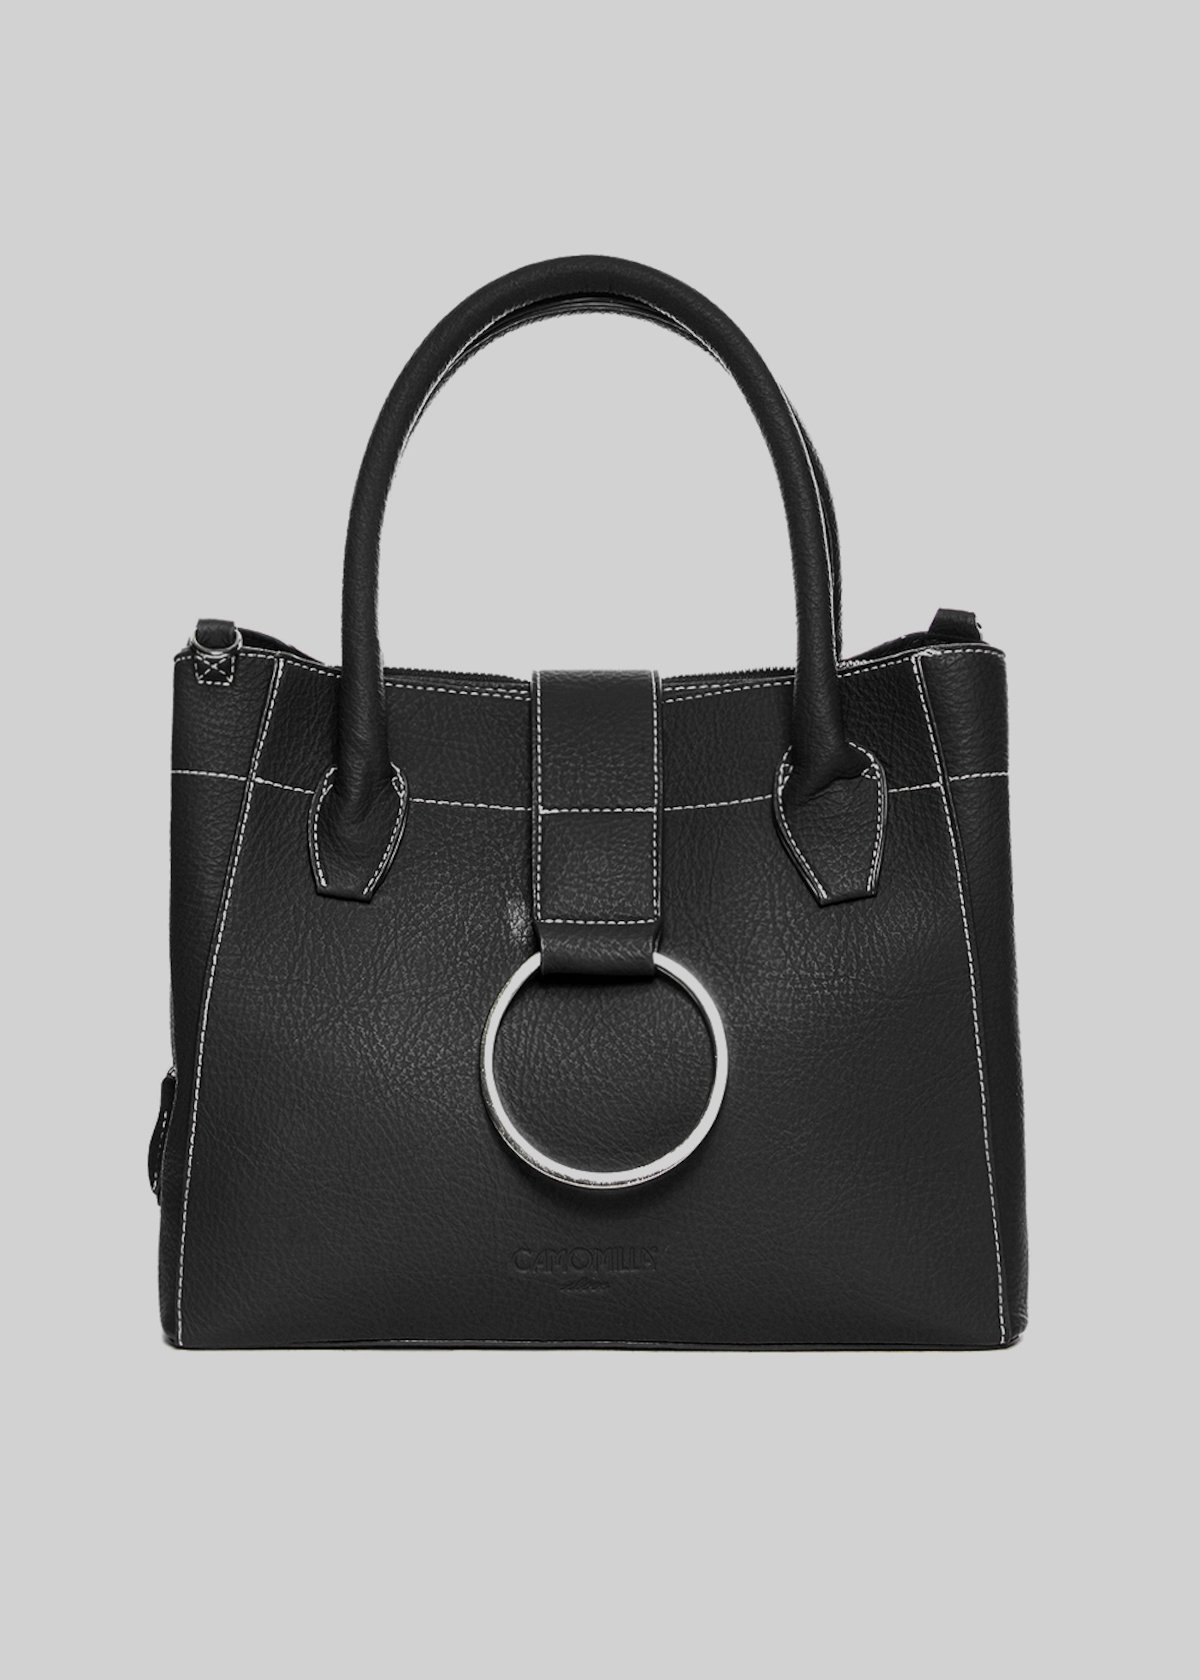 Bailey bag in faux leather with shoulder strap and metal ring closure - Black - Woman - Category image